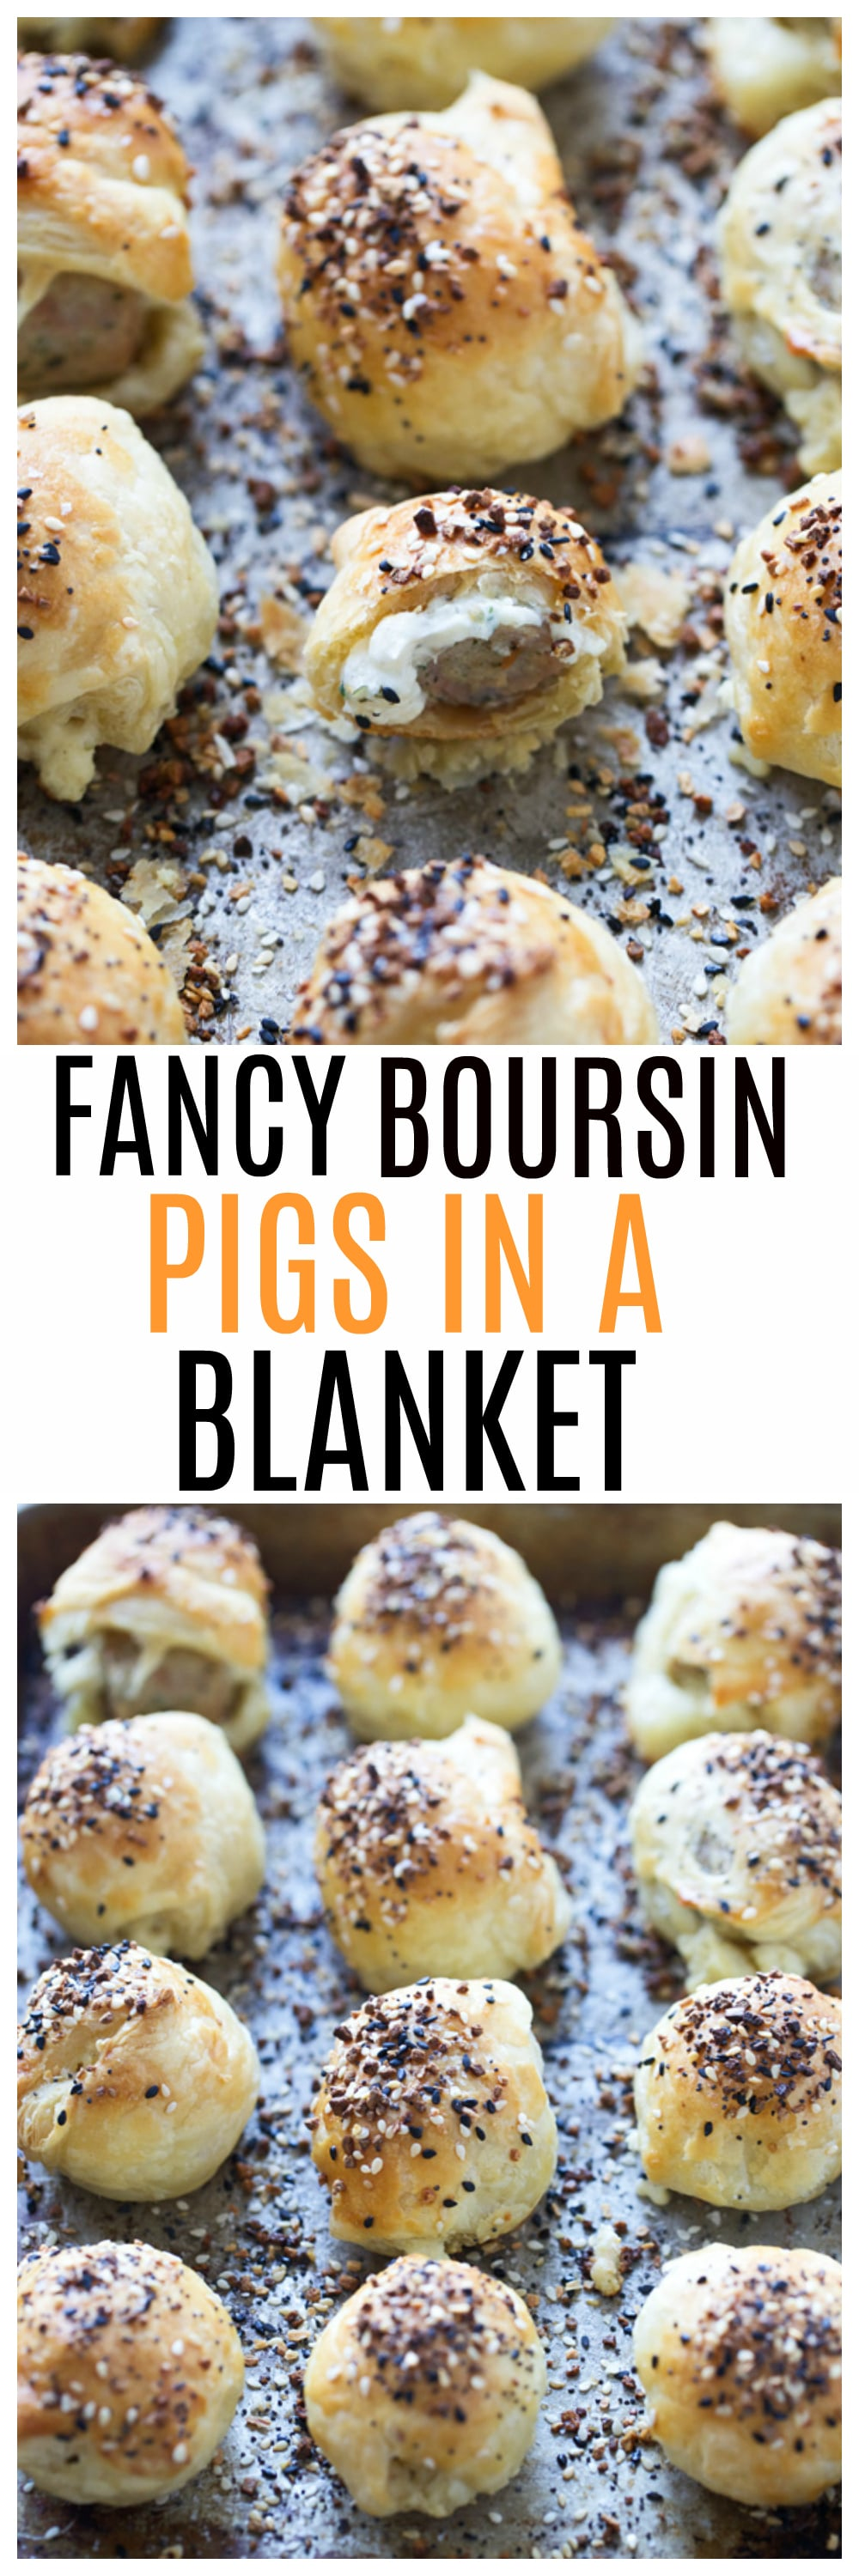 Fancy Boursin Pigs in a Blanket- Only five ingredients and so easy to throw together!